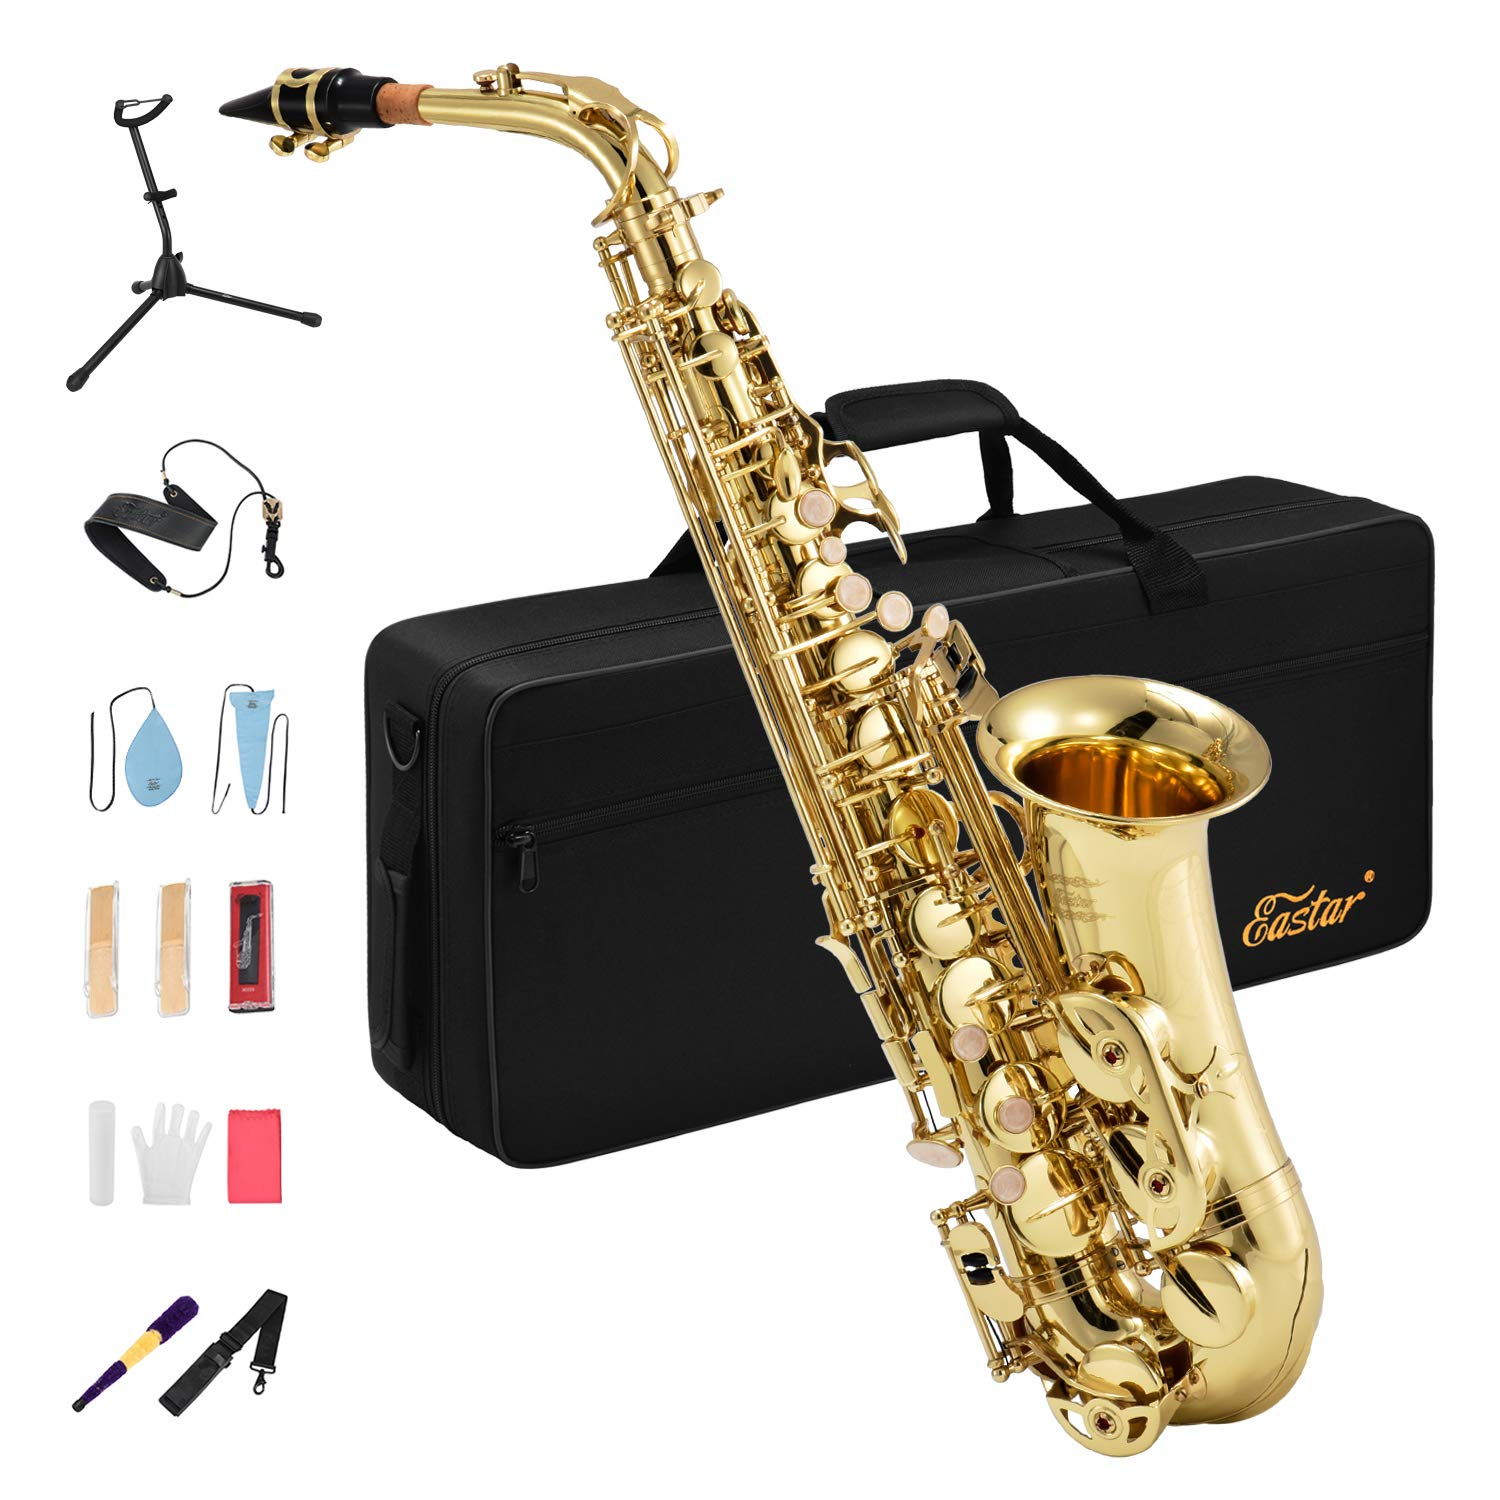 Eastar AS-Ⅱ Student Alto Saxophone E Flat Gold Lacquer Alto Sax Full Kit With Carrying Sax Case Mouthpiece Straps Reeds Stand Cork Grease by Eastar